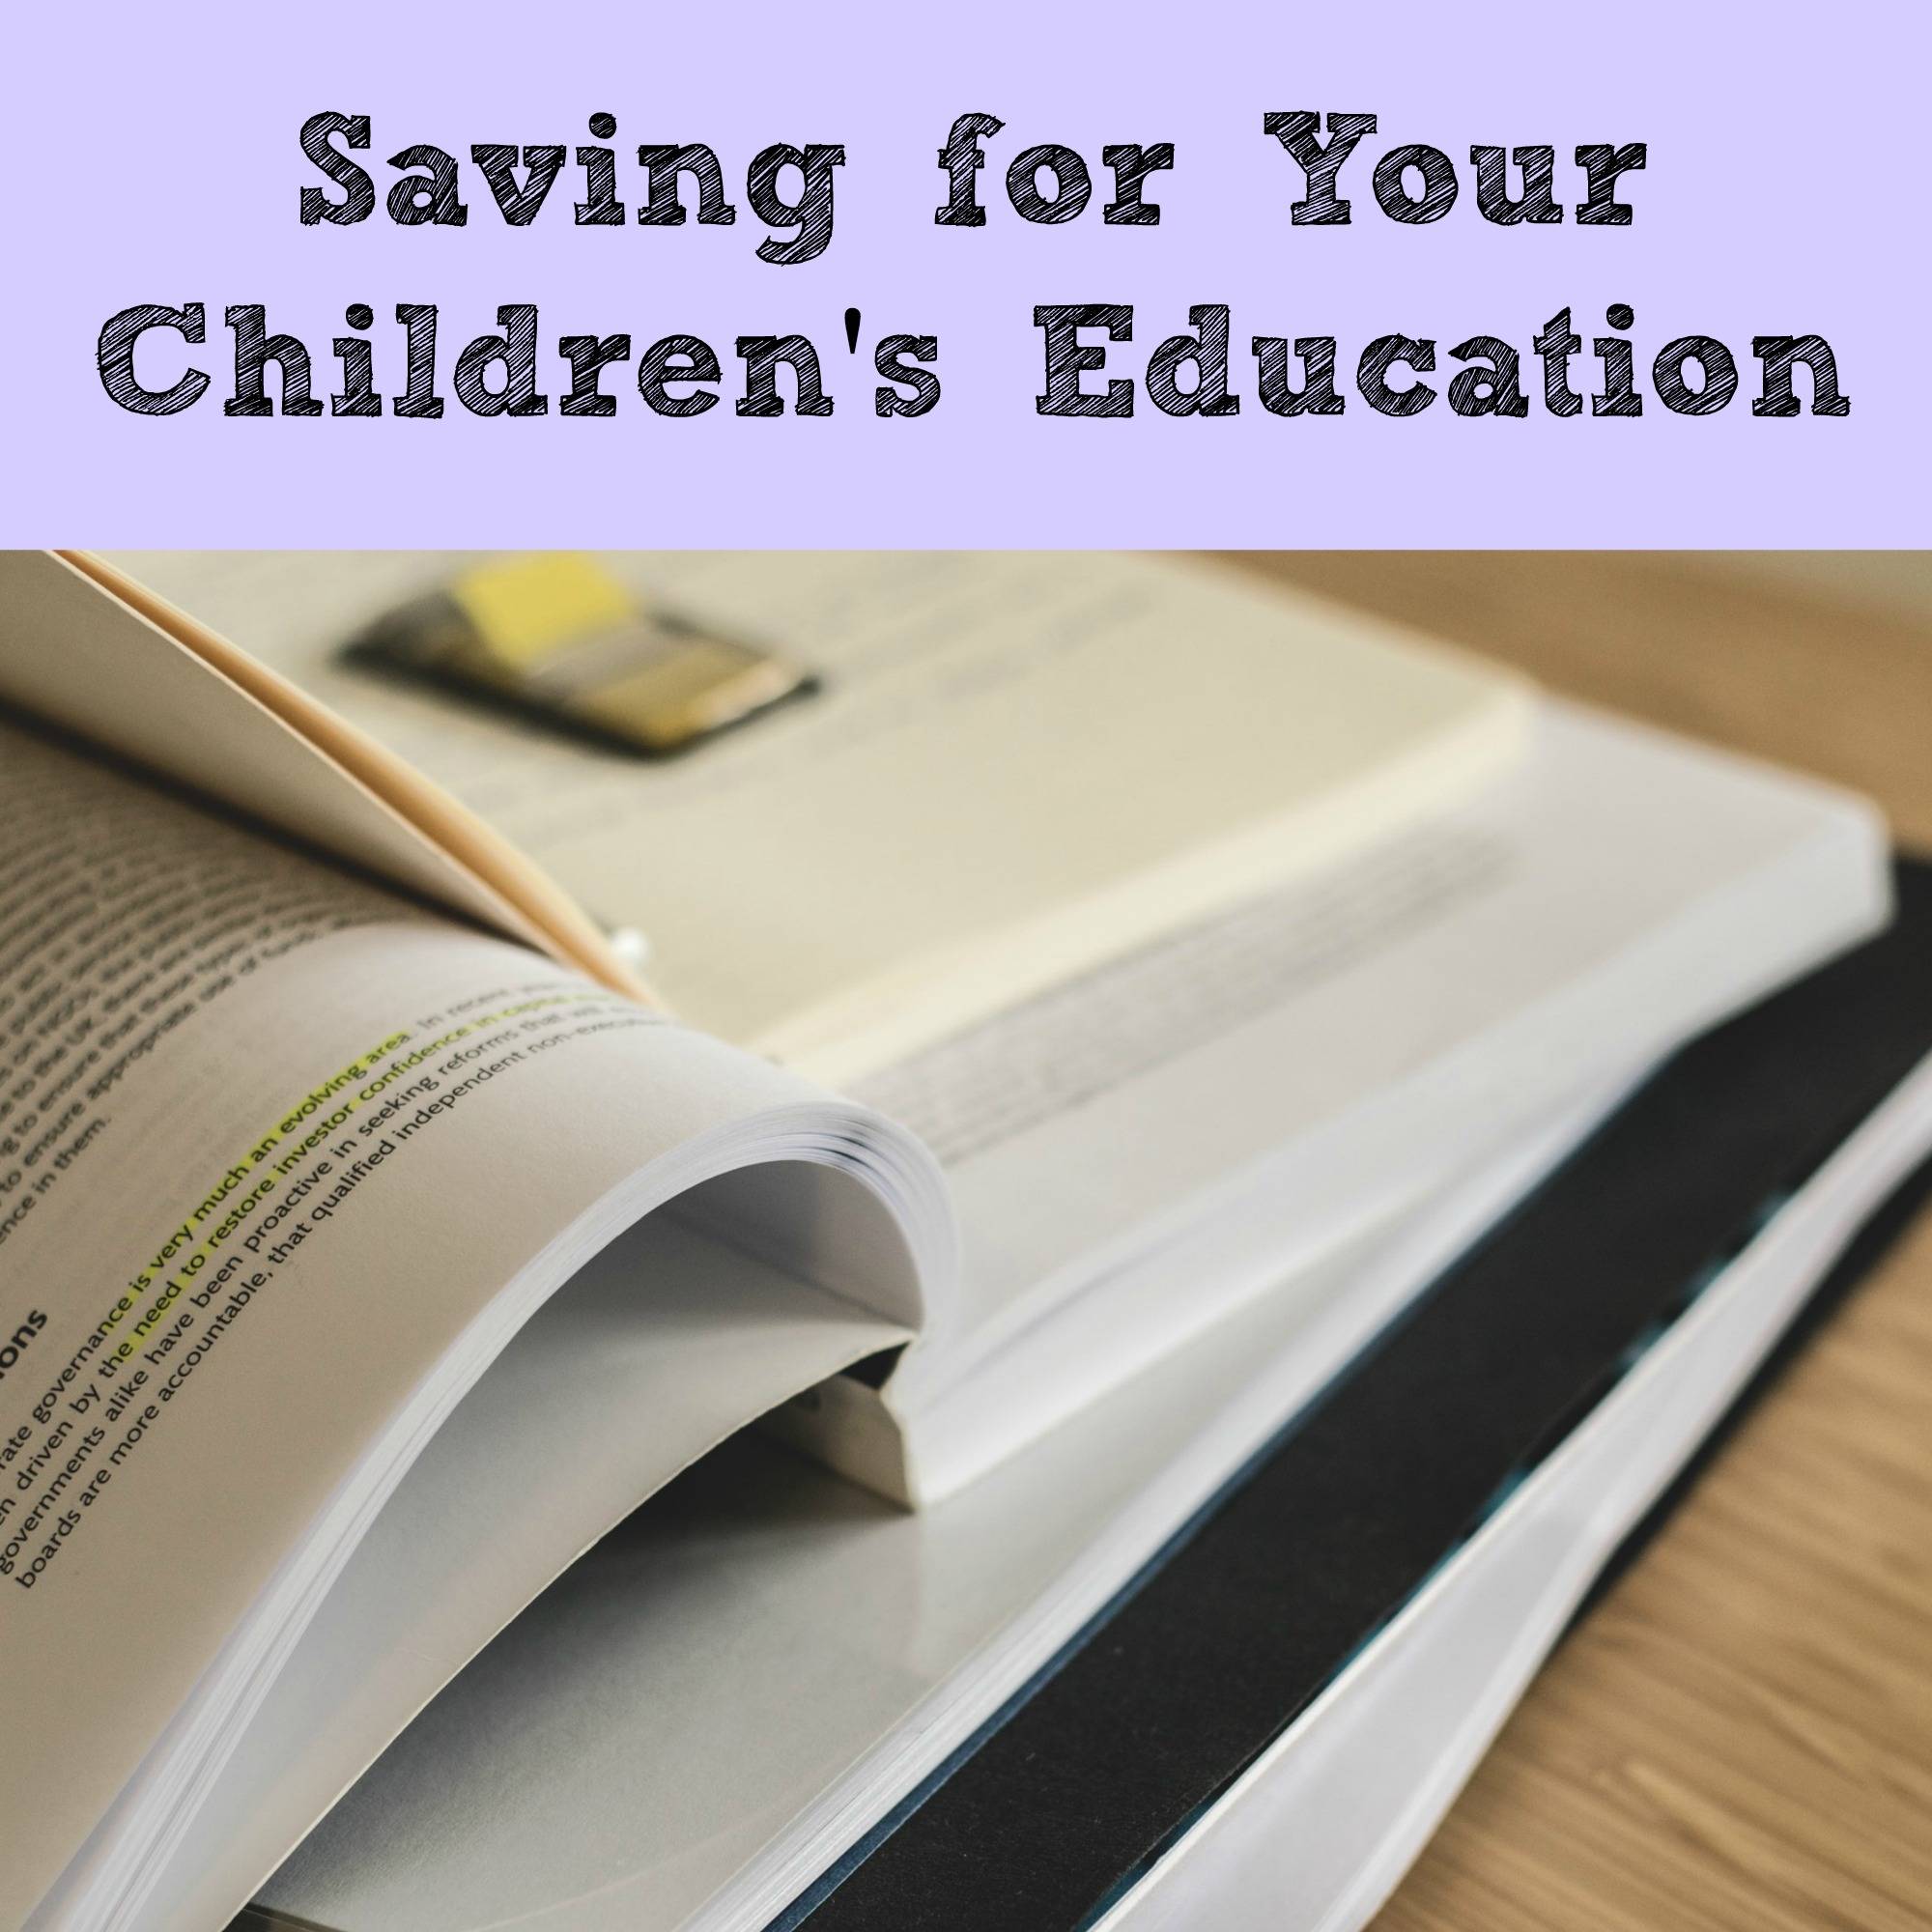 Saving for your Children's Education